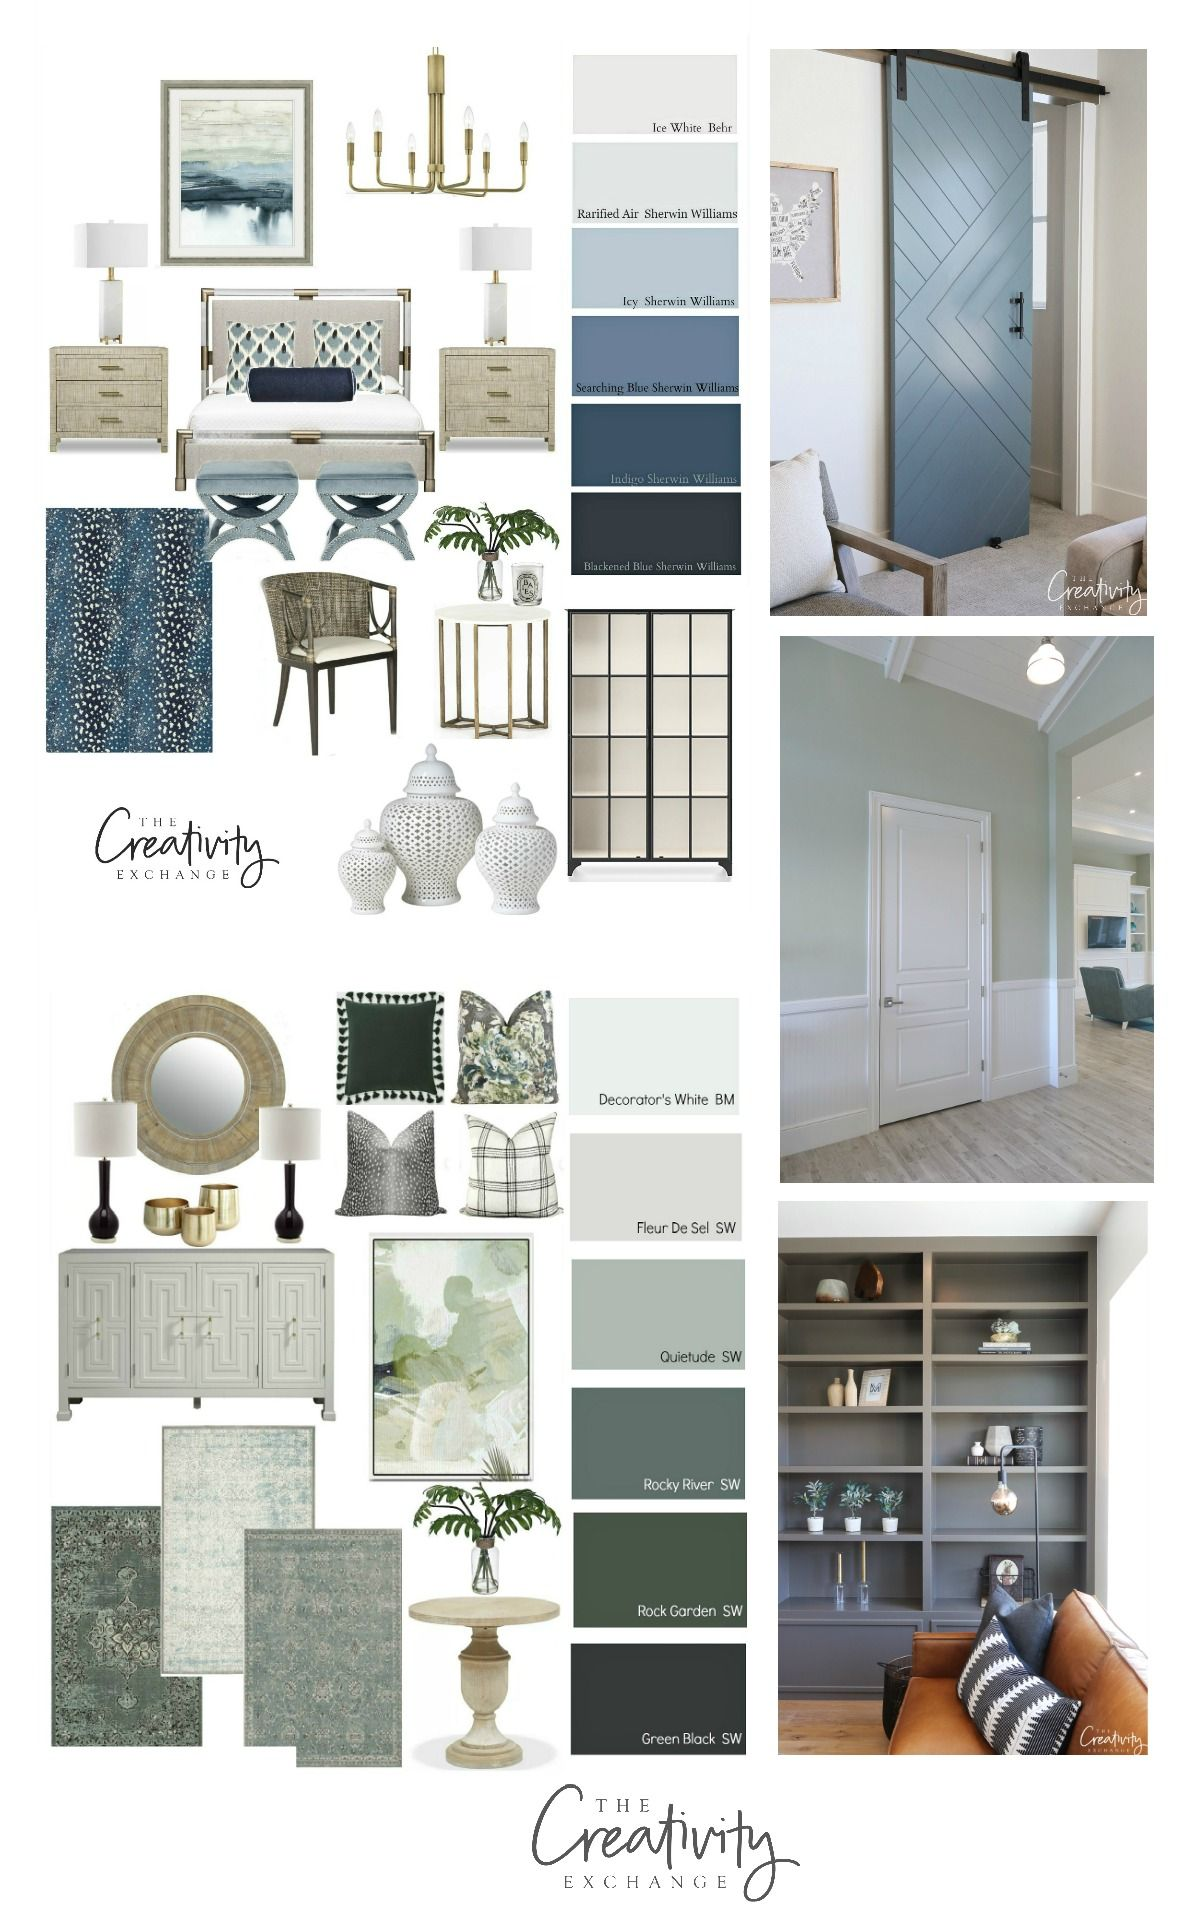 2020 Home Decor And Paint Color Trends Trending Decor Trending Paint Colors Paint Colors For Living Room